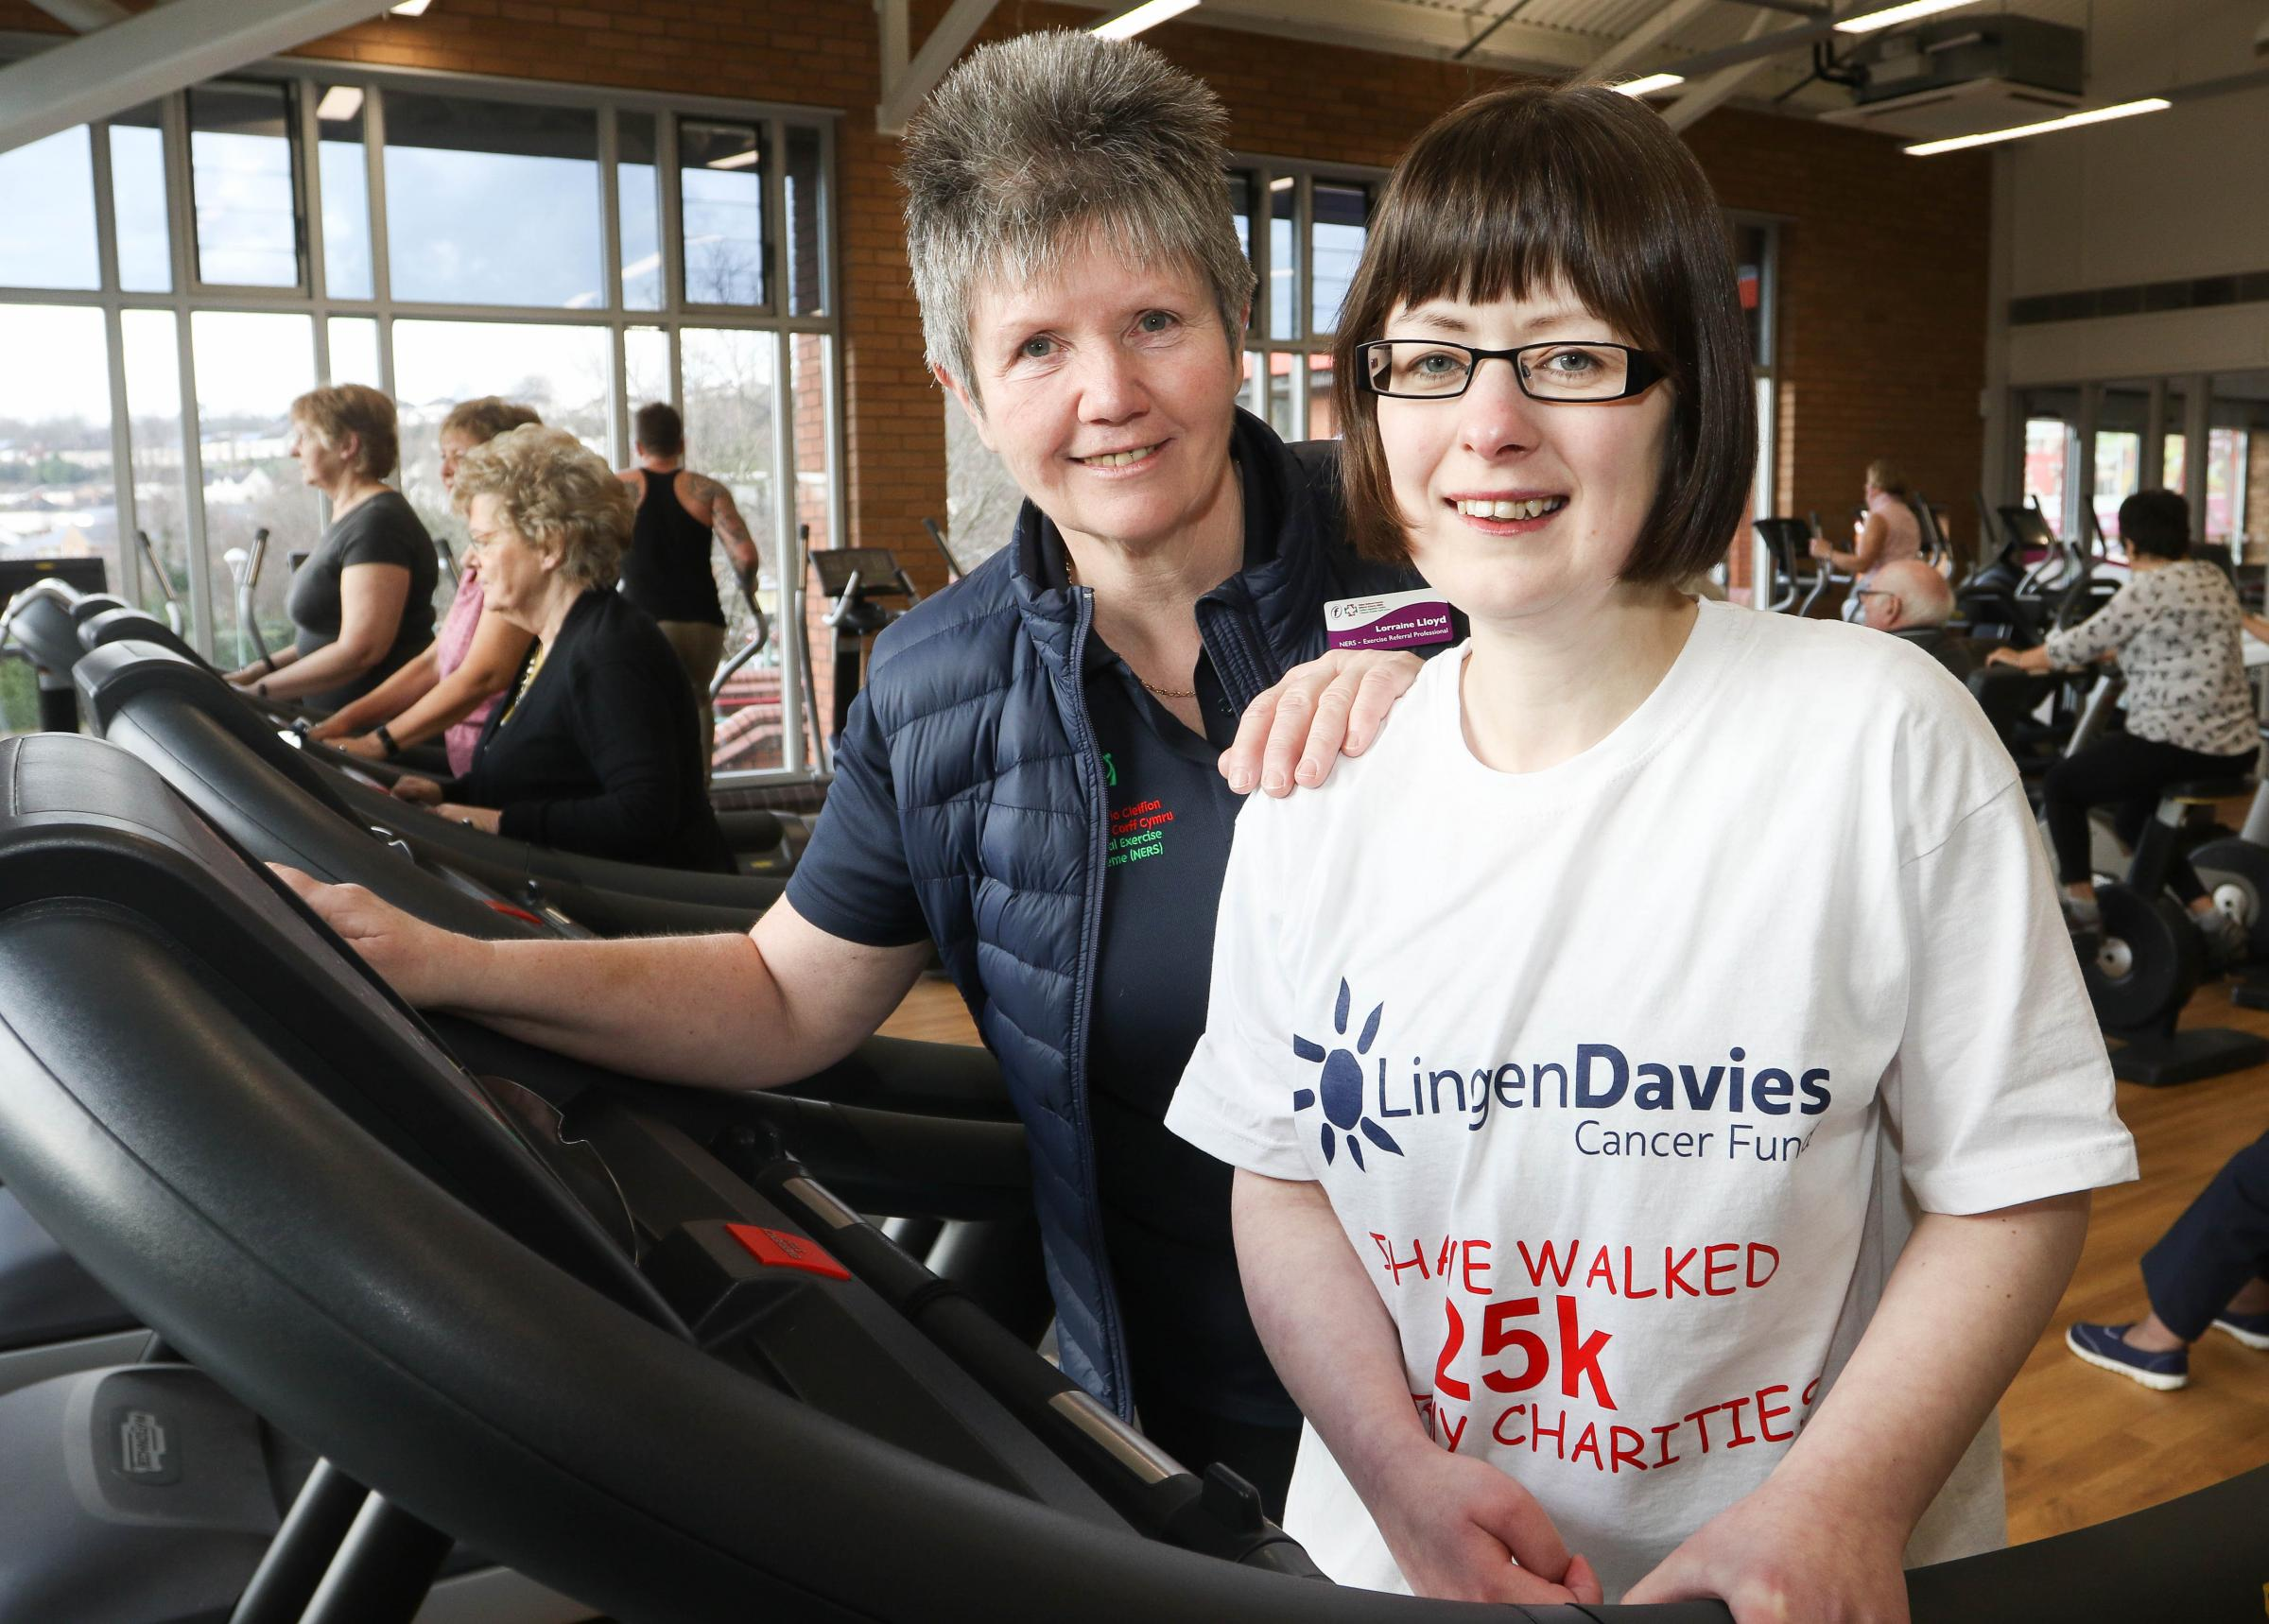 PB067-2018-4.Laura Wilkin has raised over £1,000 for the Lingen Davies Unit and The Neurological Unit in Stoke from her 25K charity walk at the Flash Leisure Centre, Welshpool with the help of her Exercise Referral Professional Lorraine Lloyd (BEM).Pic